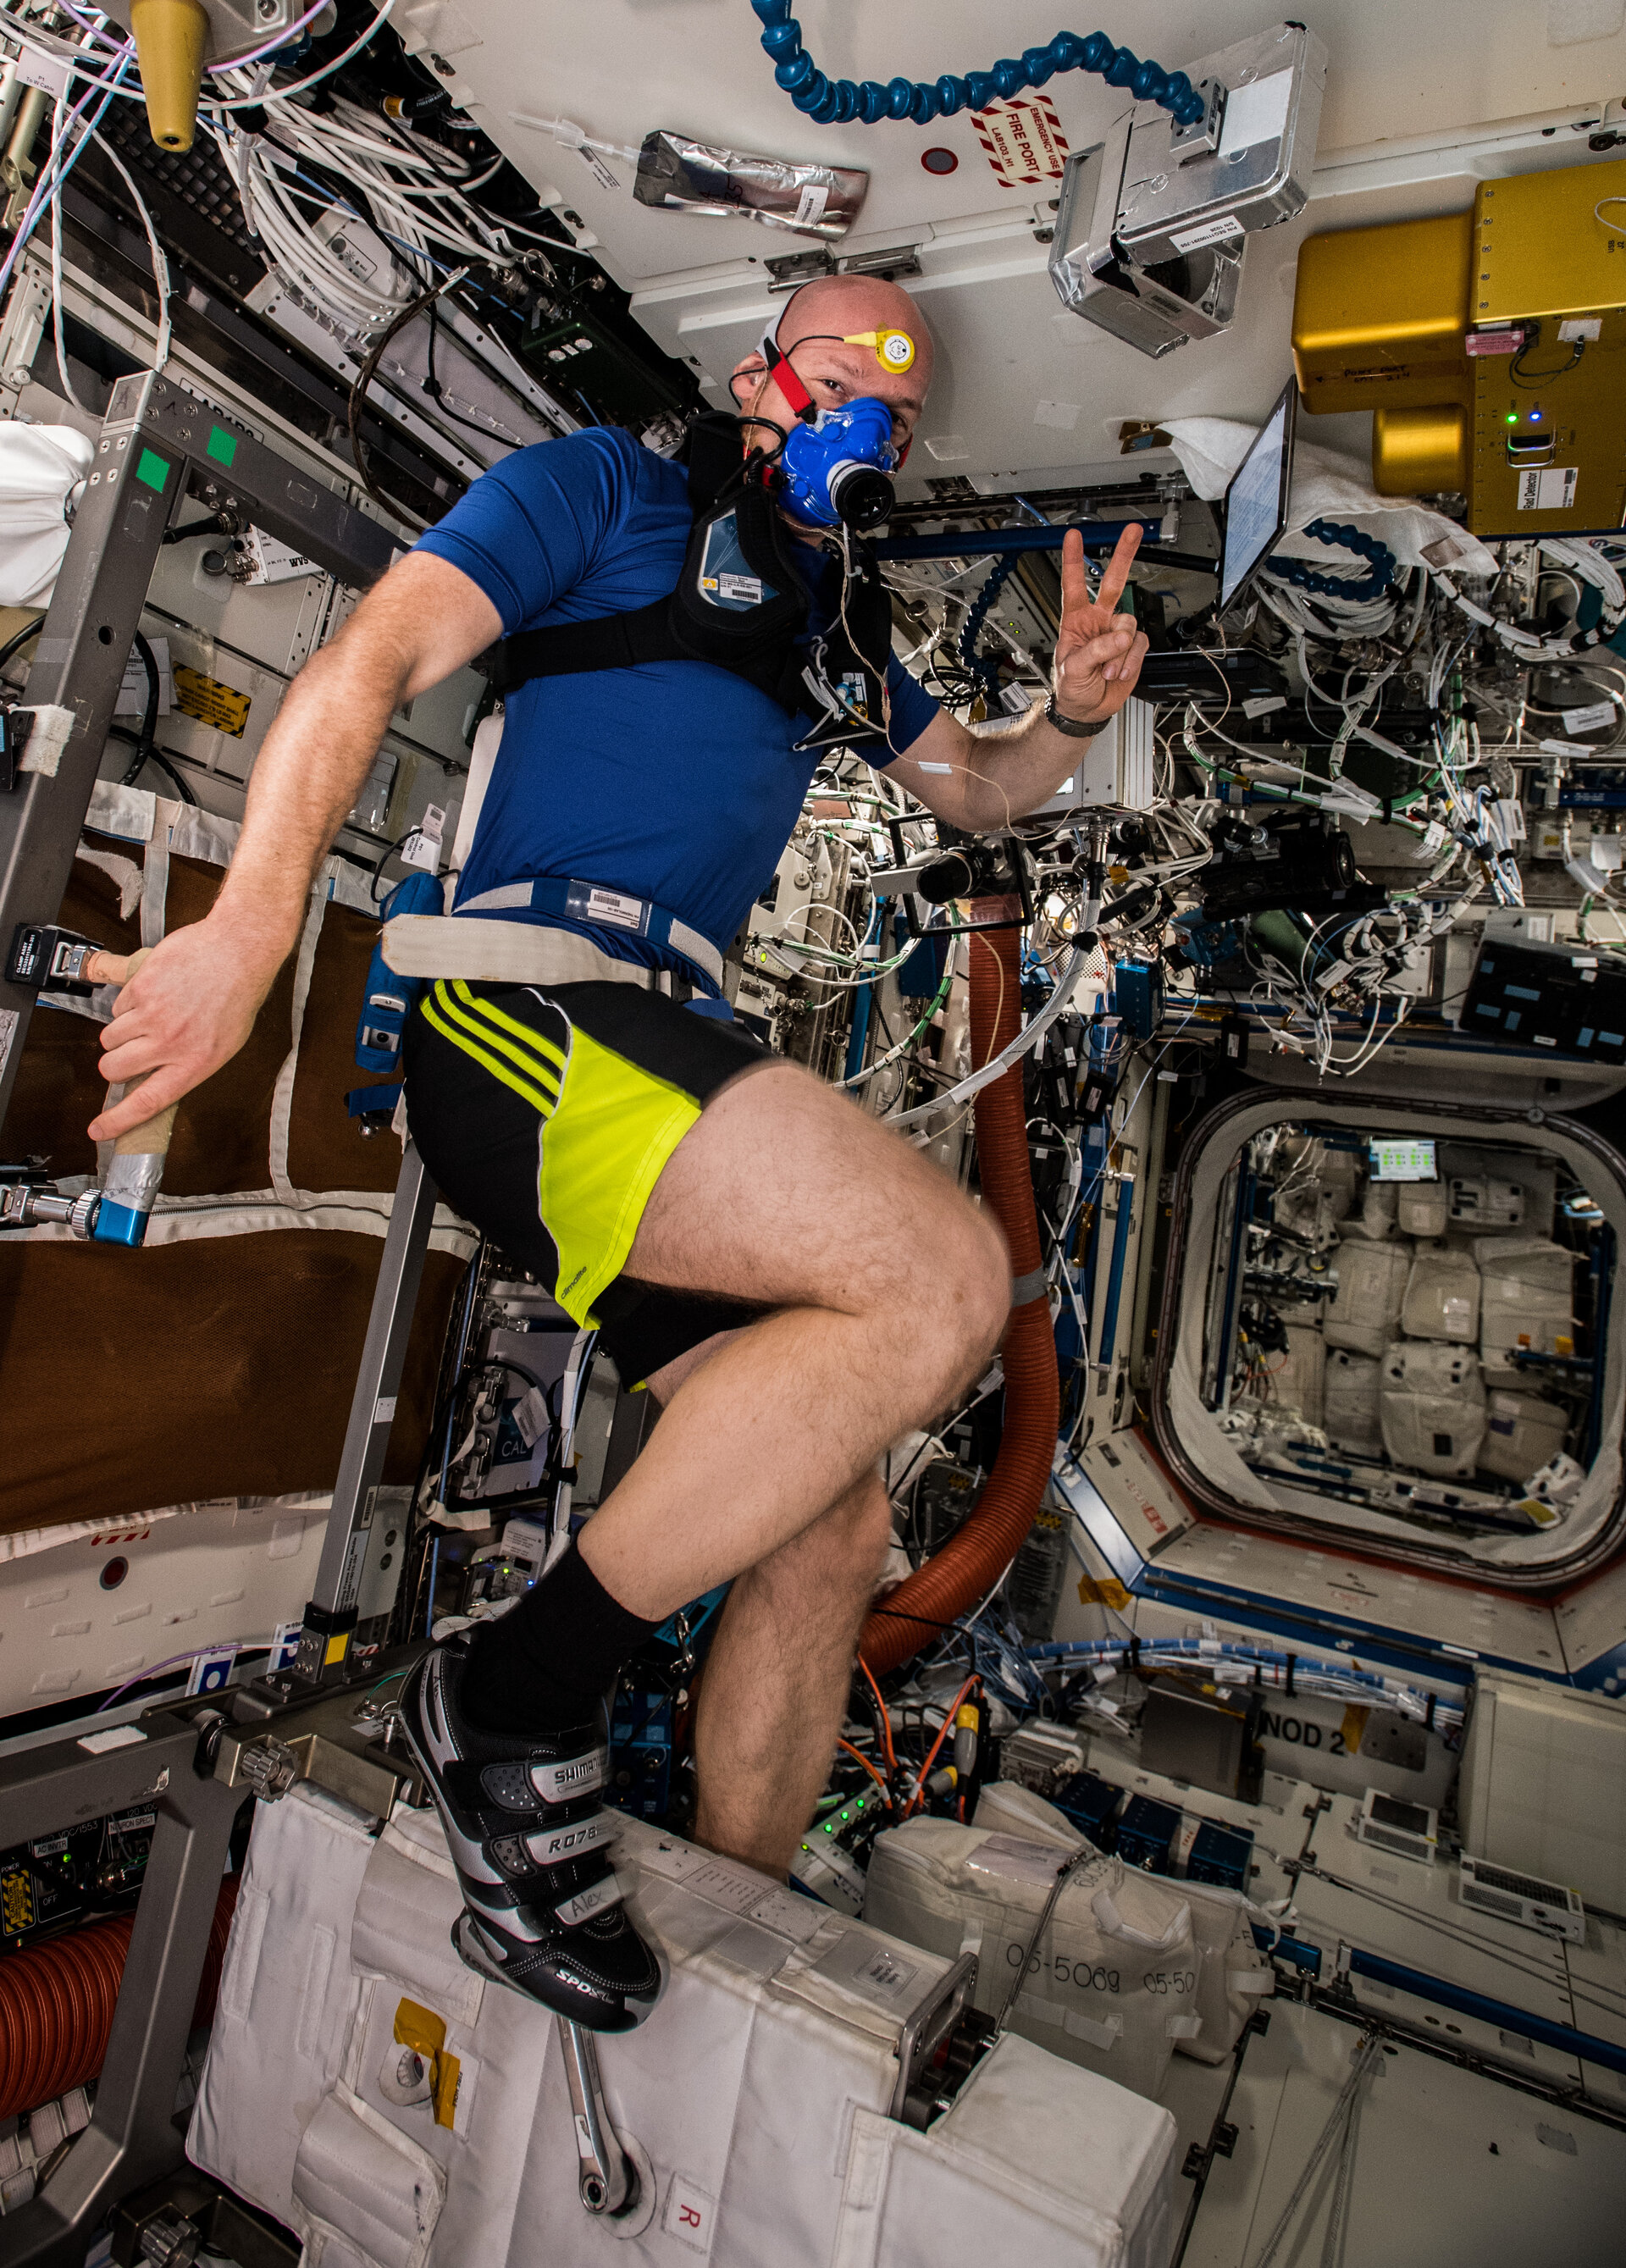 Alexander Gerst exercising on Space Station